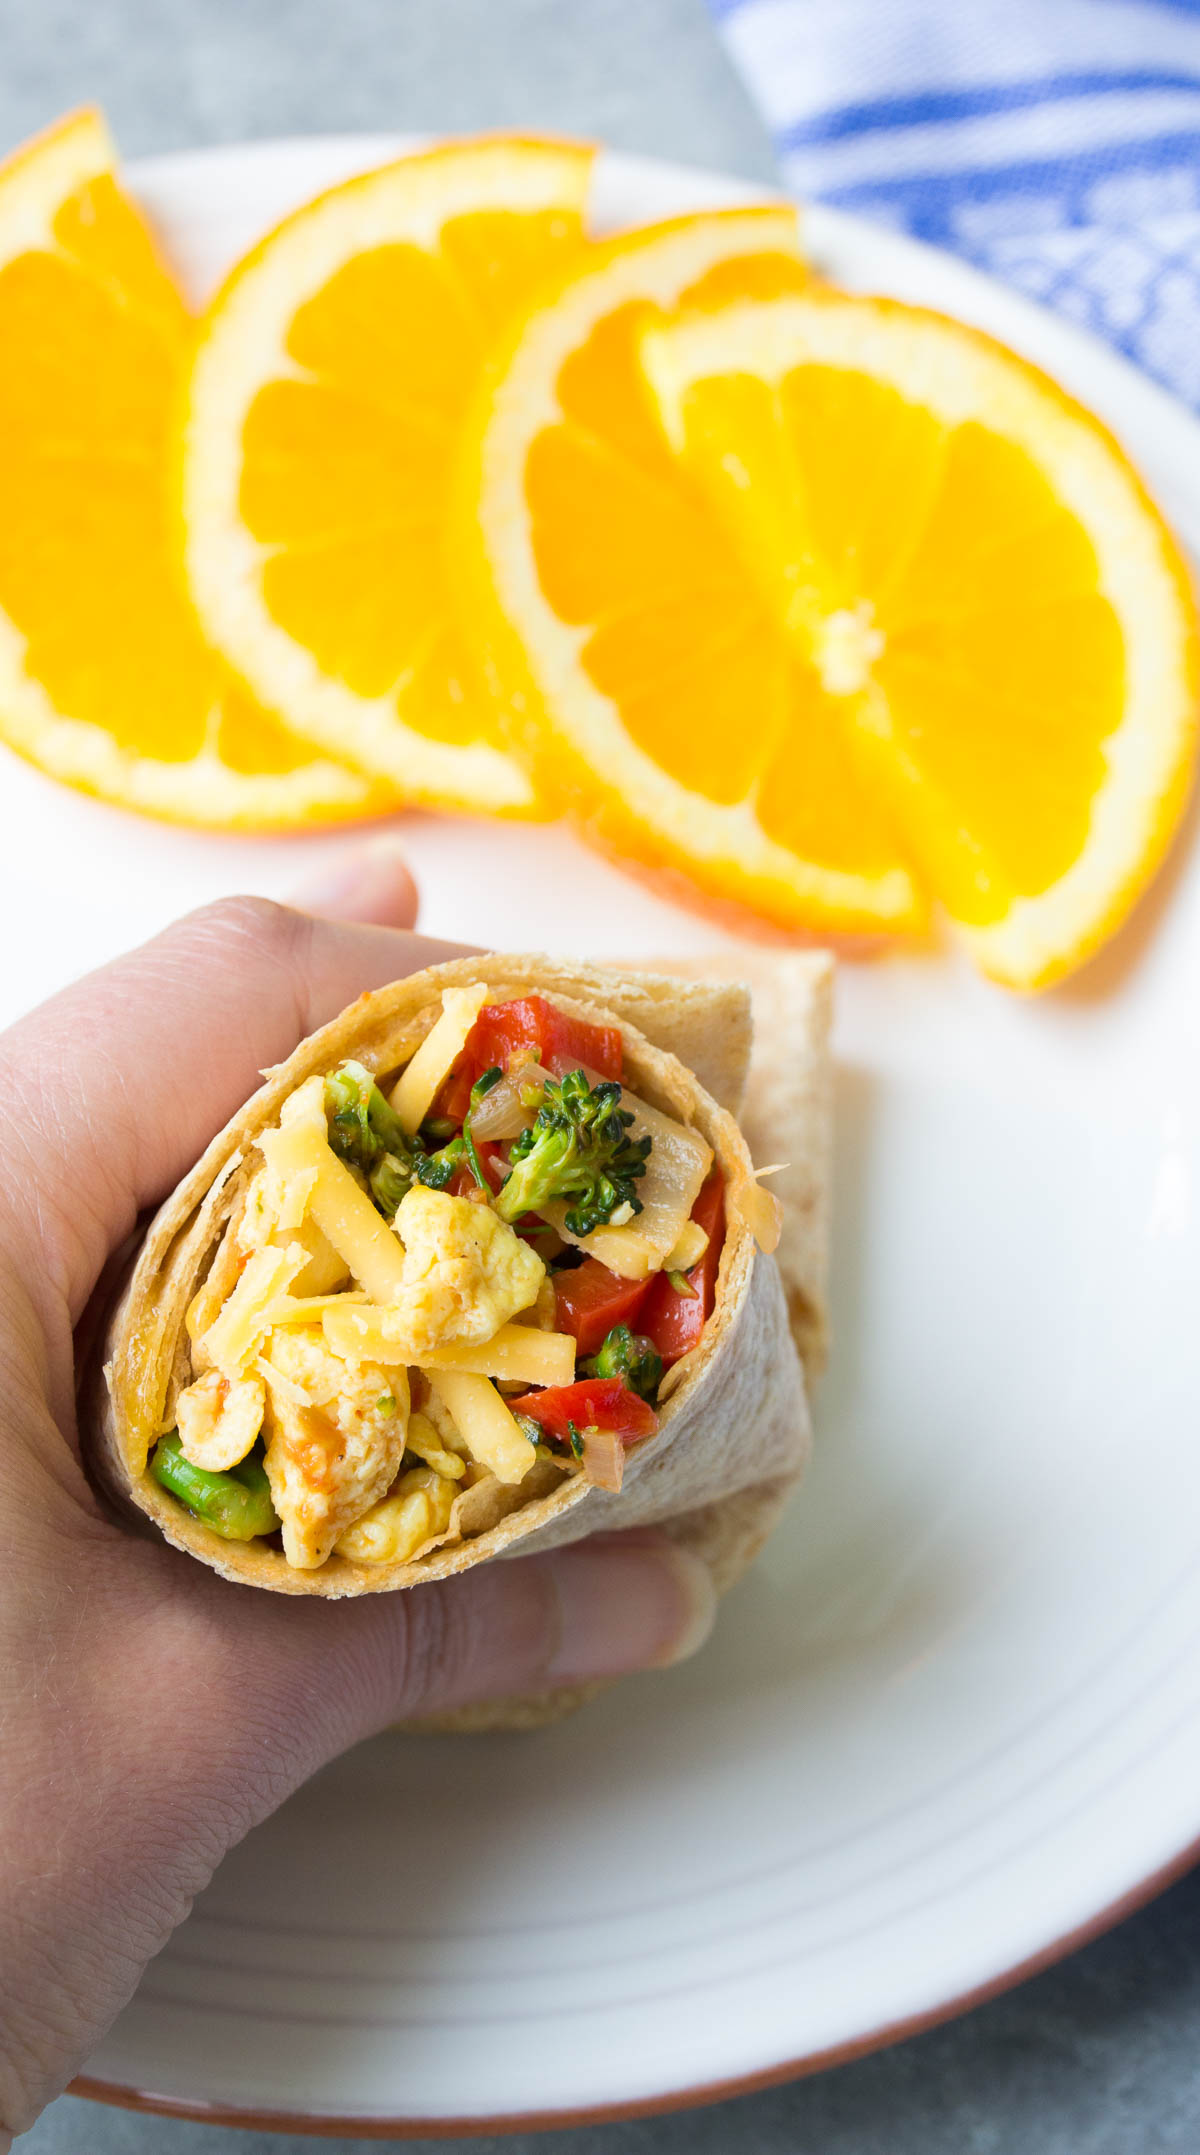 Healthy Freezer Vegetable Breakfast Burritos that you can make ahead and freeze for busy mornings. Easy meal prep burritos with broccoli, eggs and salsa!   www.kristineskitchenblog.com